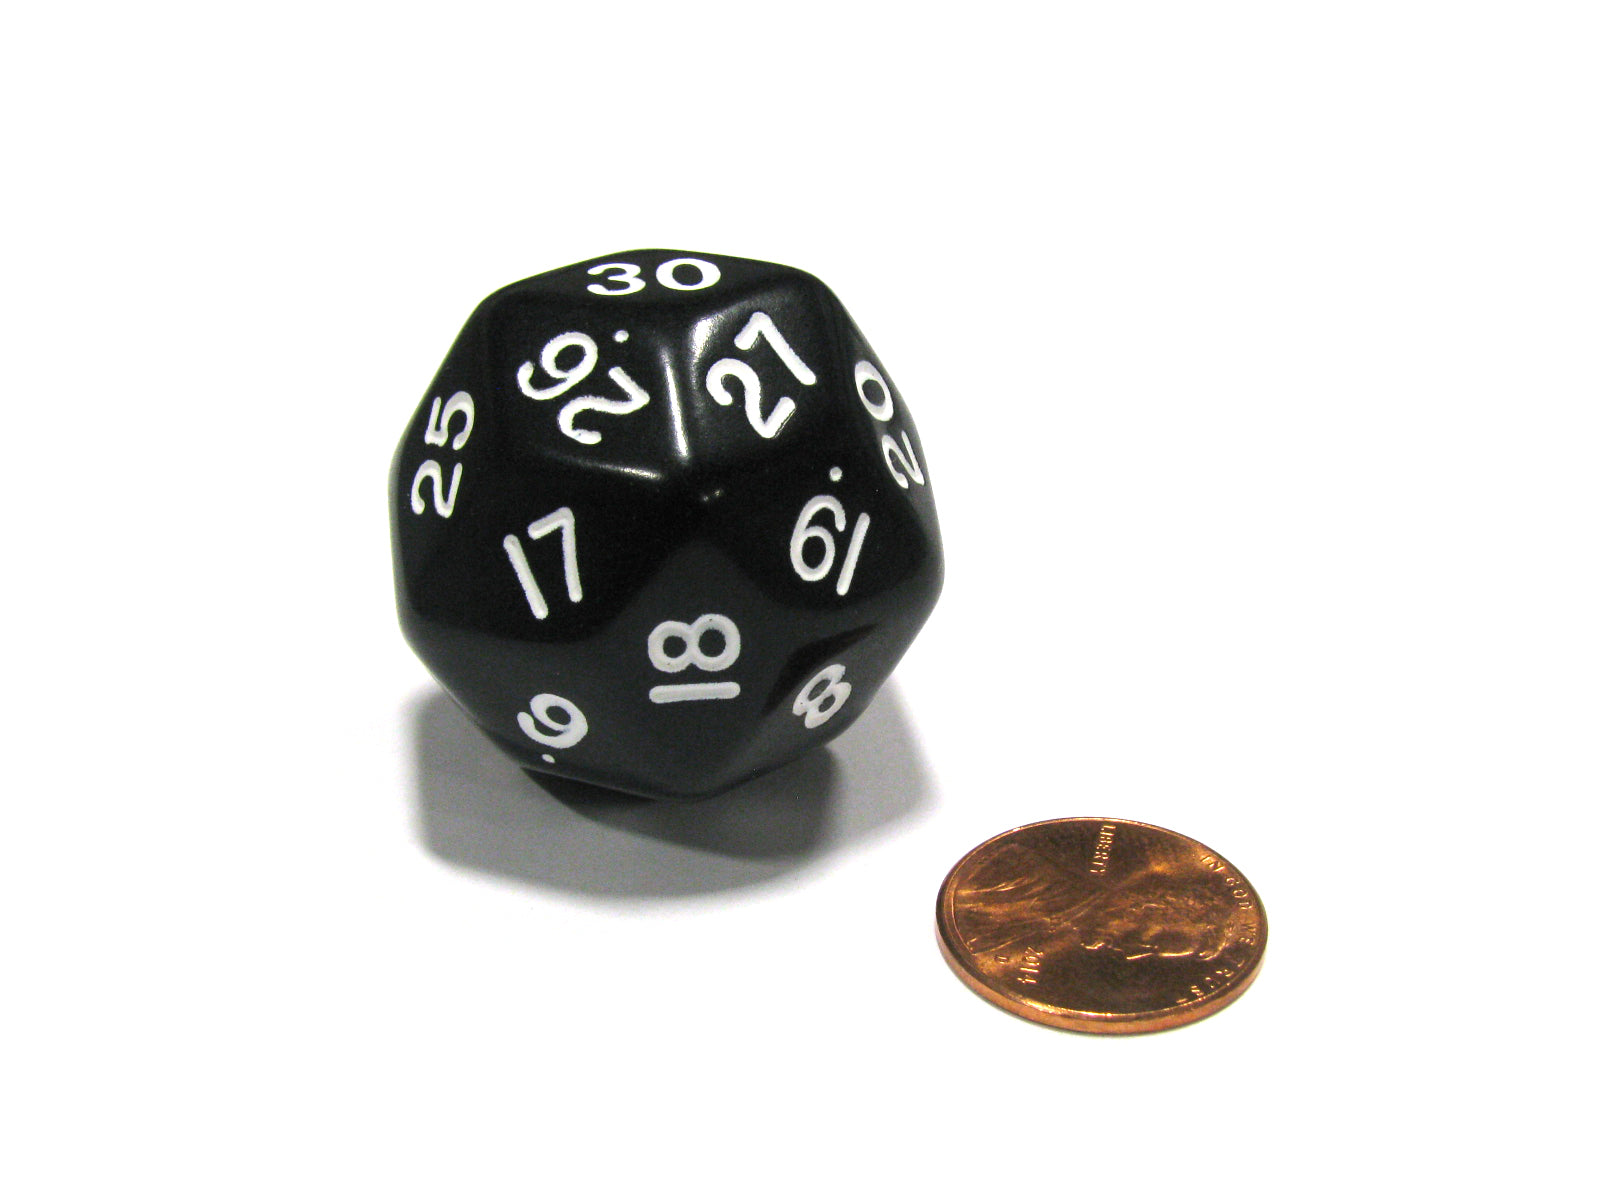 Triantakohedron D30 30 Sided 33mm Jumbo RPG Gaming Dice - Black w White Number